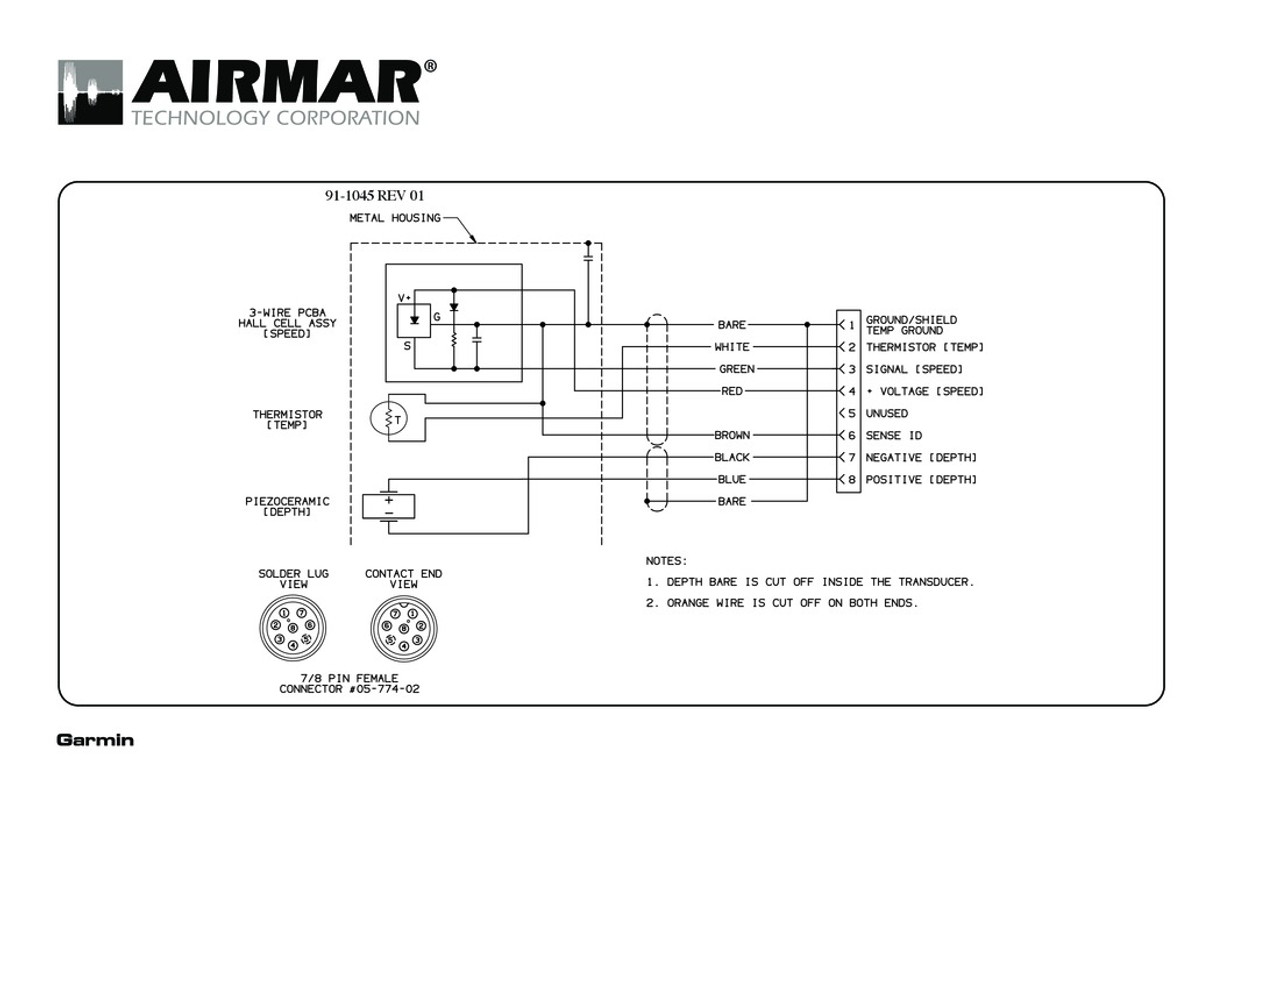 Airmar Wiring Diagram Garmin B744 8 Pin Dst Blue Bottle Marine Grade Switch Panel Diagrams Depth Speed Temperature B744v Vl 600w Transducers With Connector